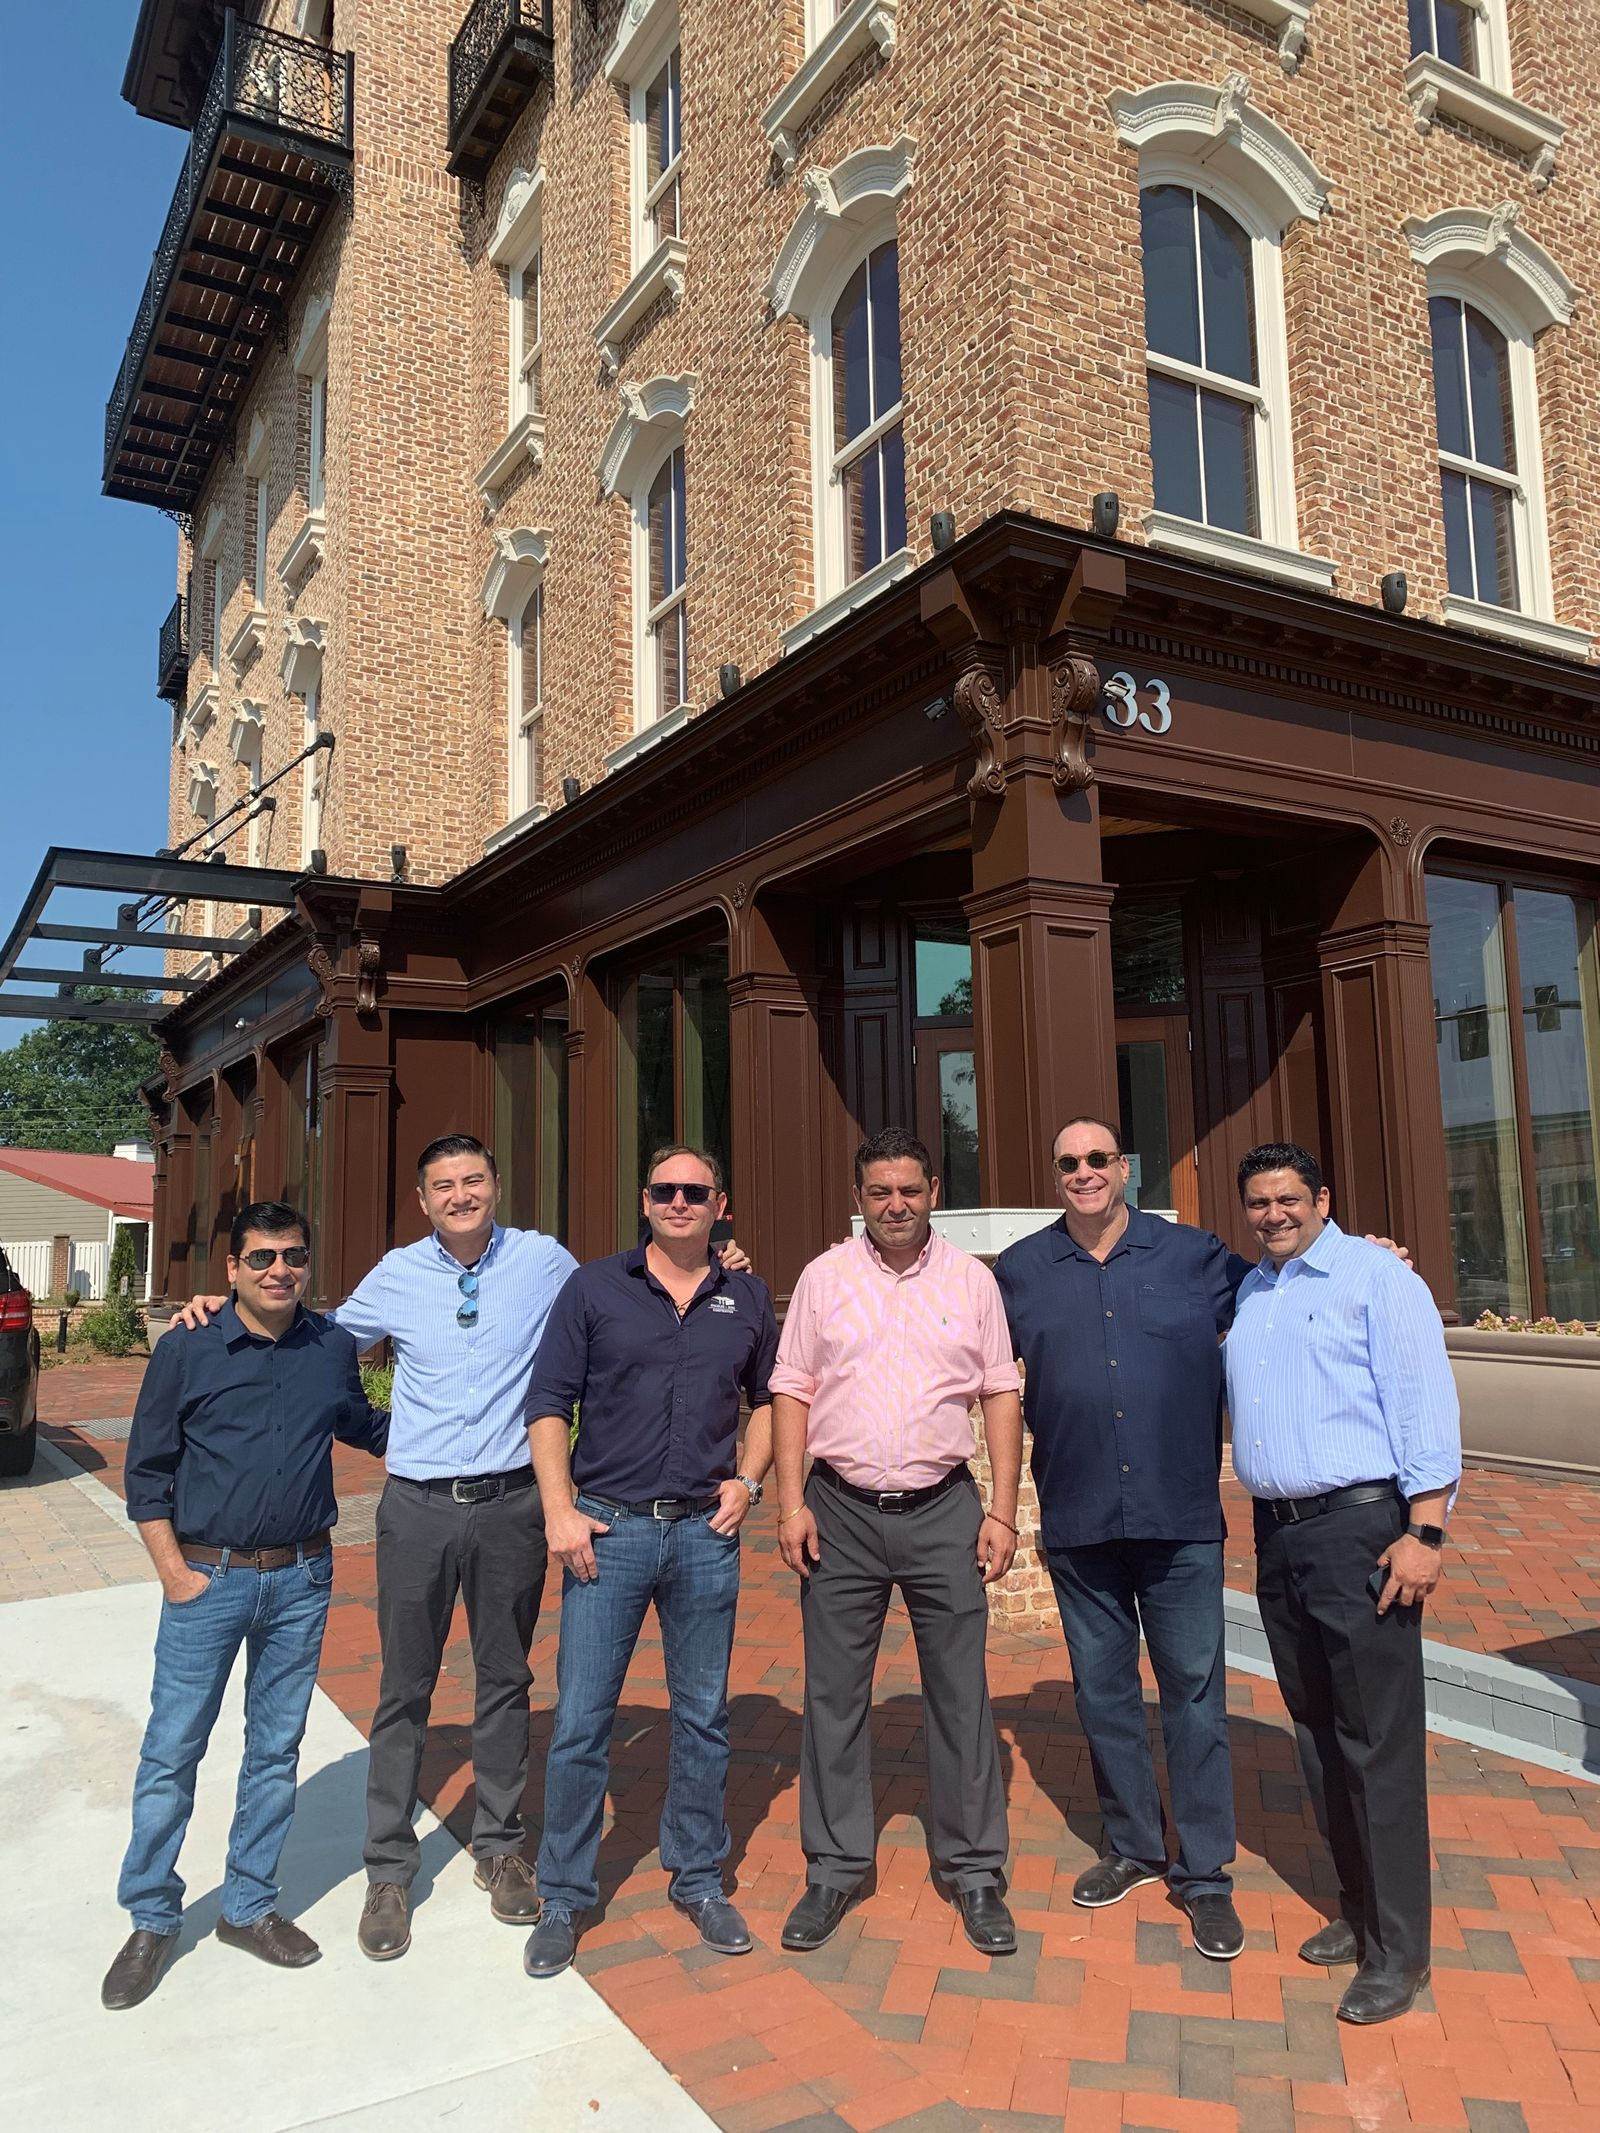 Taffer's Tavern Signs Lease for First Franchise Location in the Nation